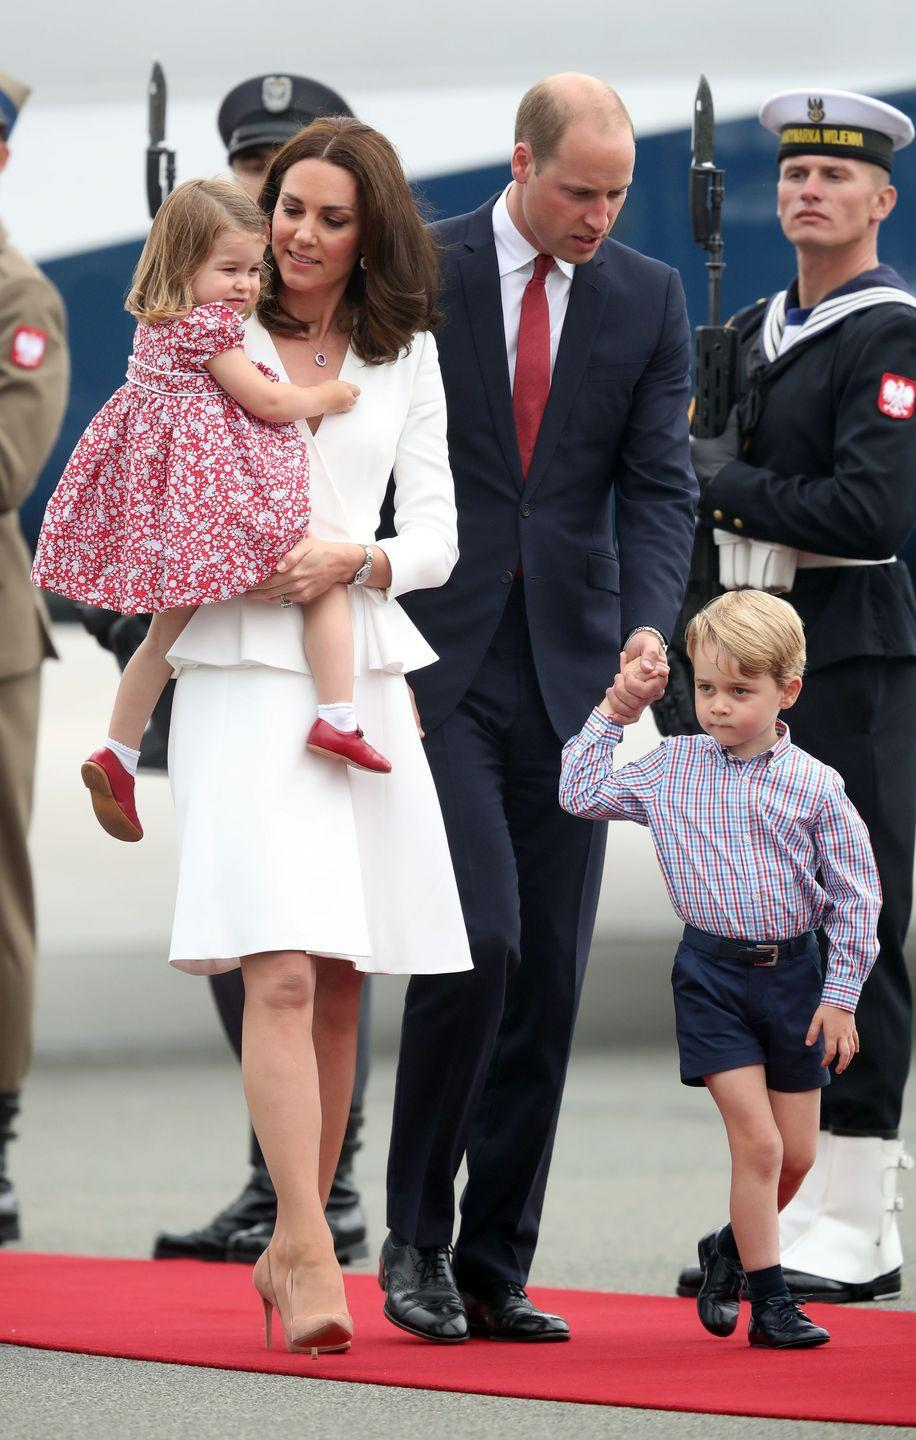 <p>It's not unusual for the Royals to pay tribute to a host country when on tour by wearing something adorned with a national bird, flower or color. Case in point: The royal family's ensembles when they touched down in Poland, wearing red and white, the colors of the country's flag. </p>